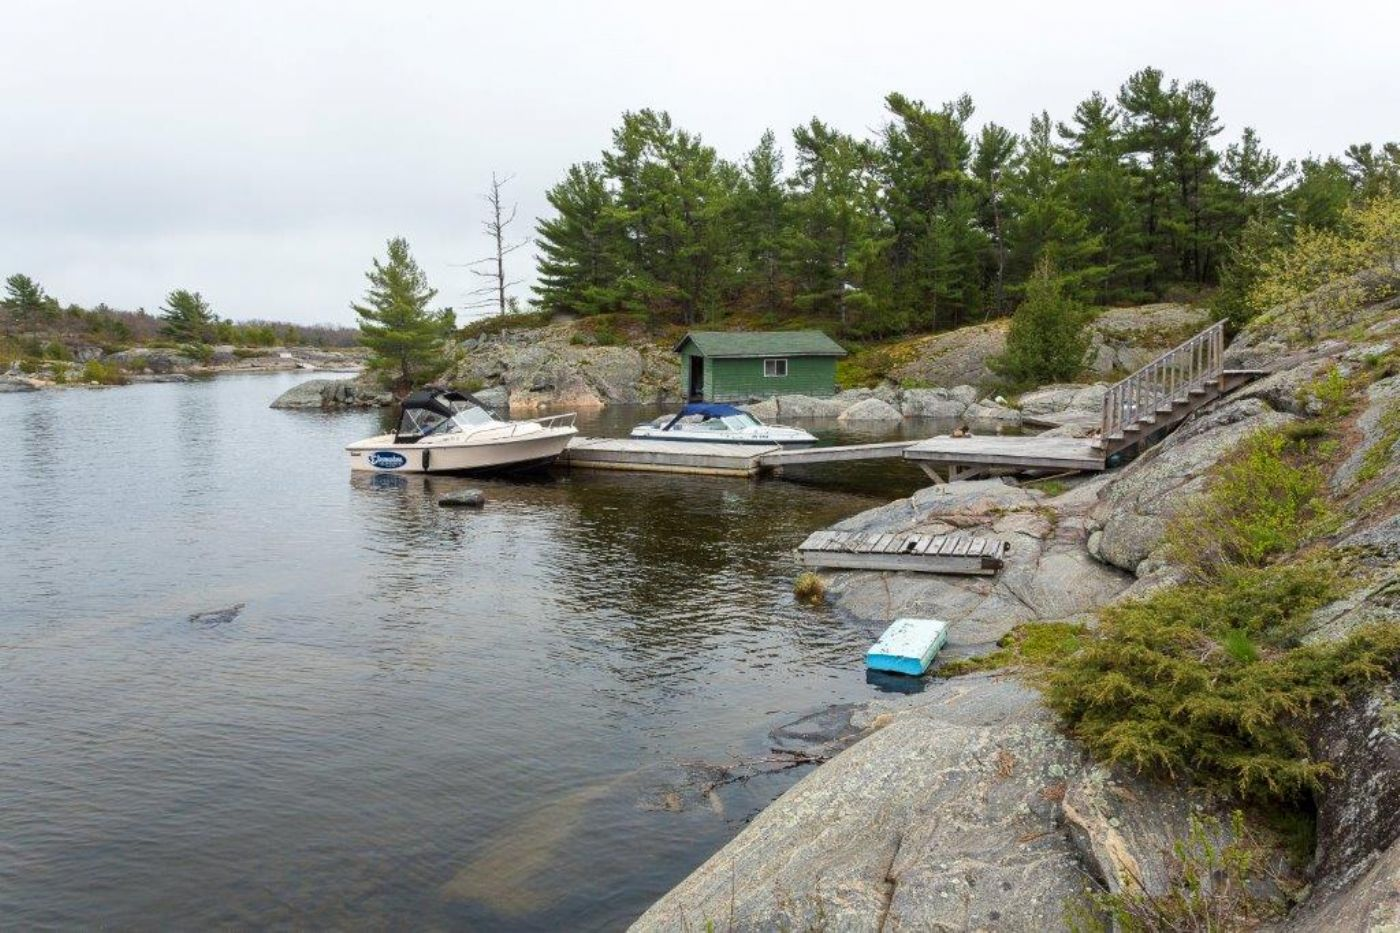 Killkare Island Georgian Bay Cottages For Sale Waterfront